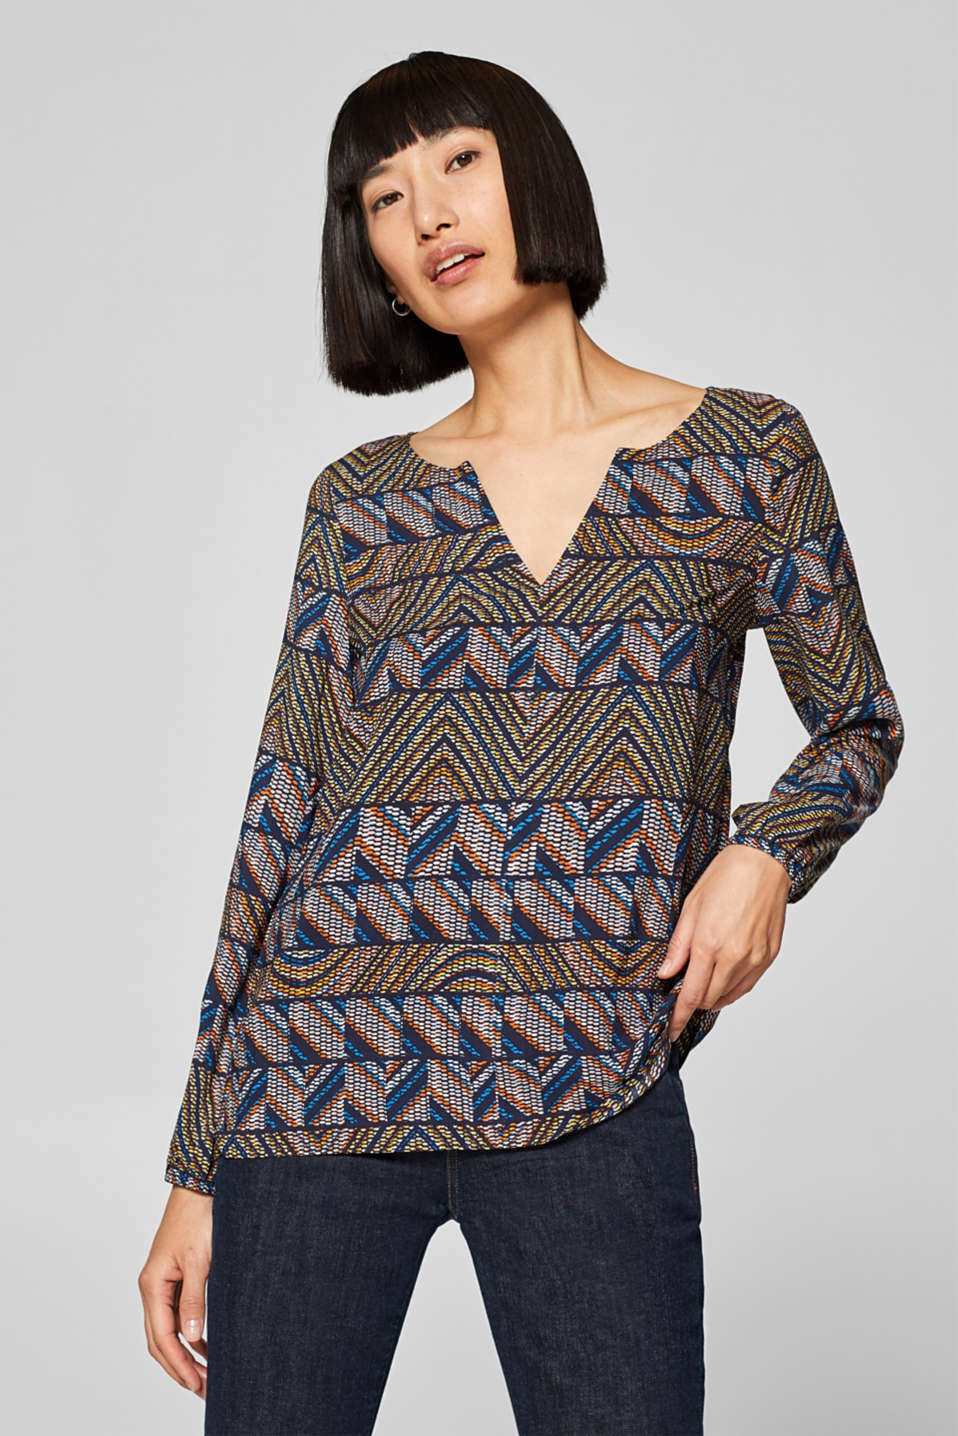 Tunic blouse with a graphic print